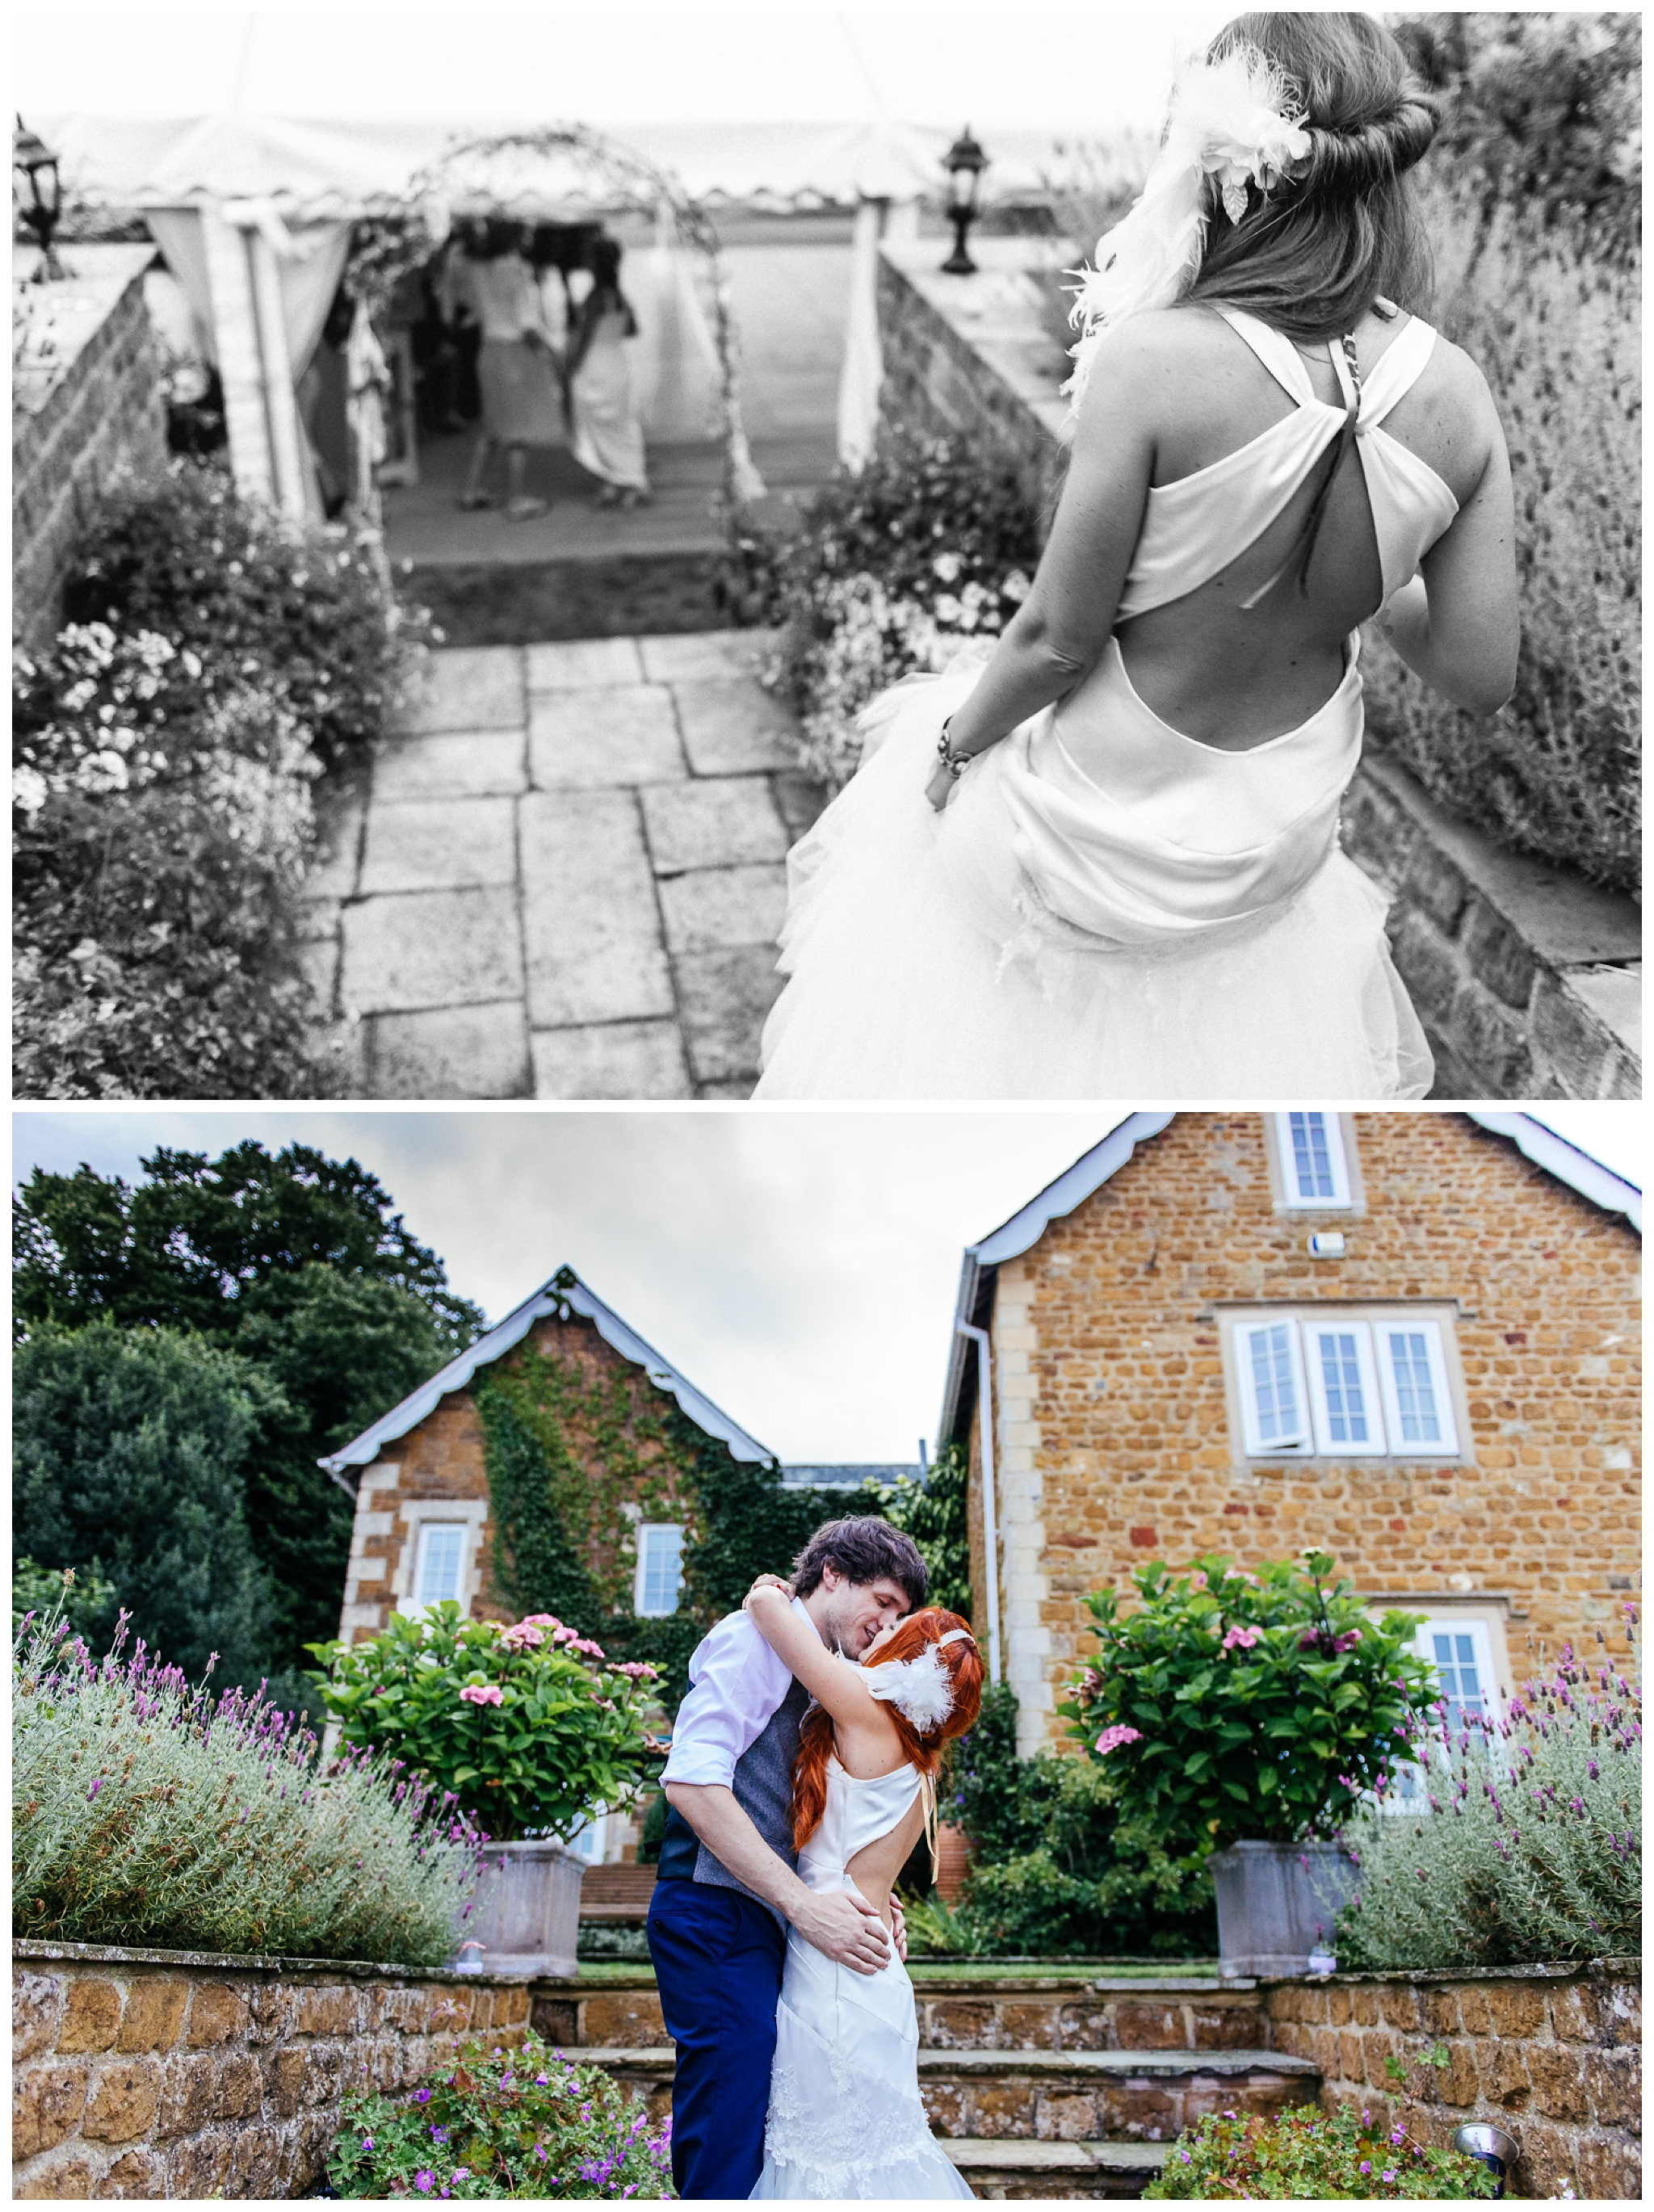 Nikki_Cooper_Photography_vintage_handmade_wedding_0088.jpg